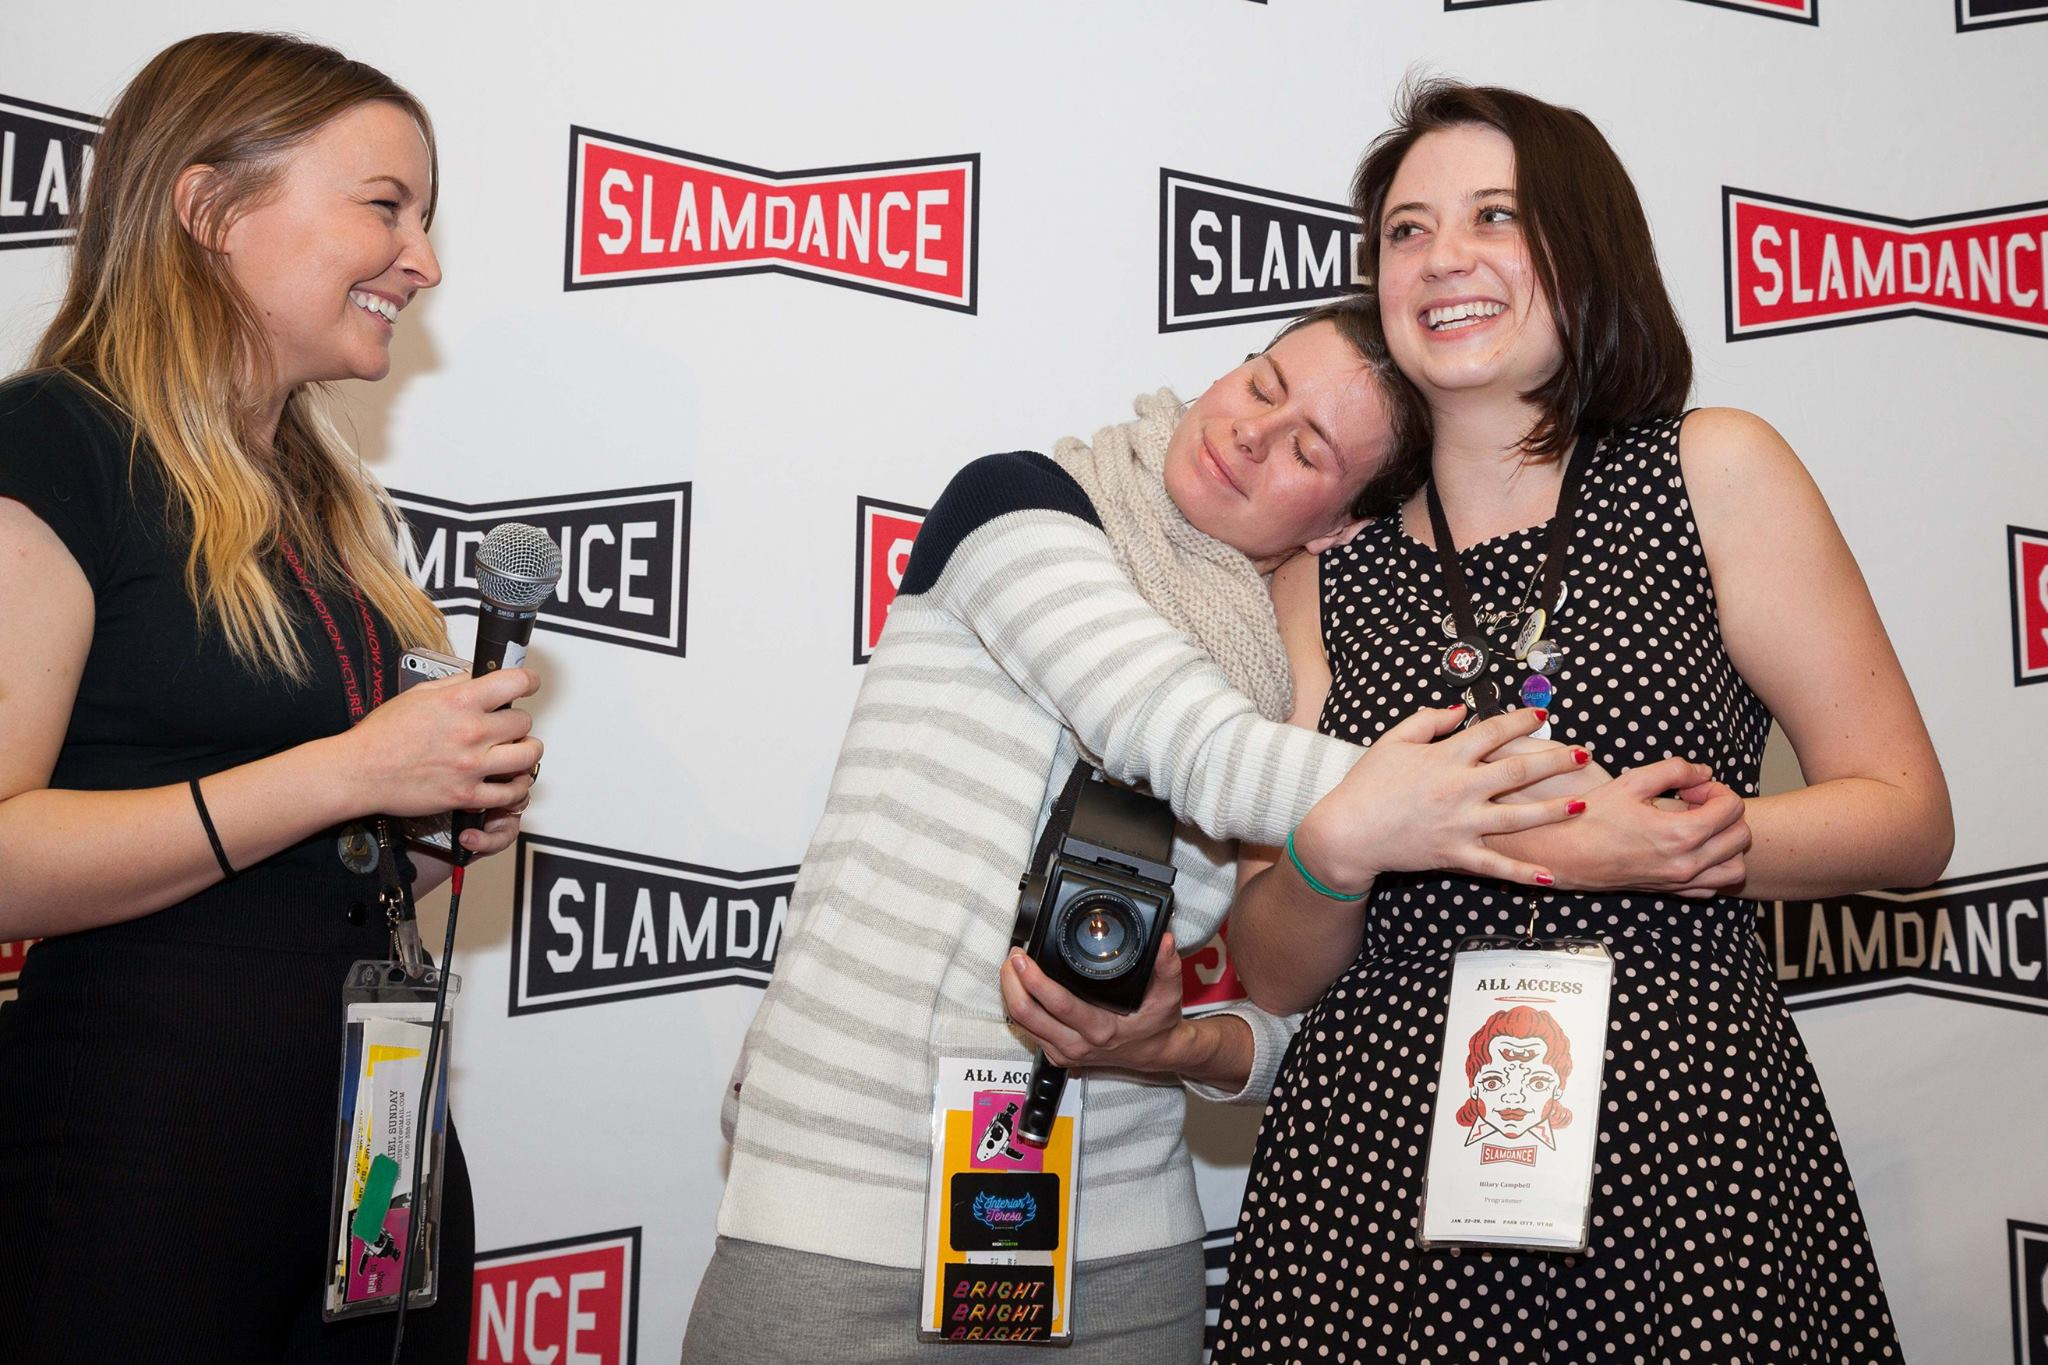 Hilary accepting the prize for best short film for the Slamdance Digital Bolex Fearless Filmmaking Showcase (Photo by Ian Stroud)